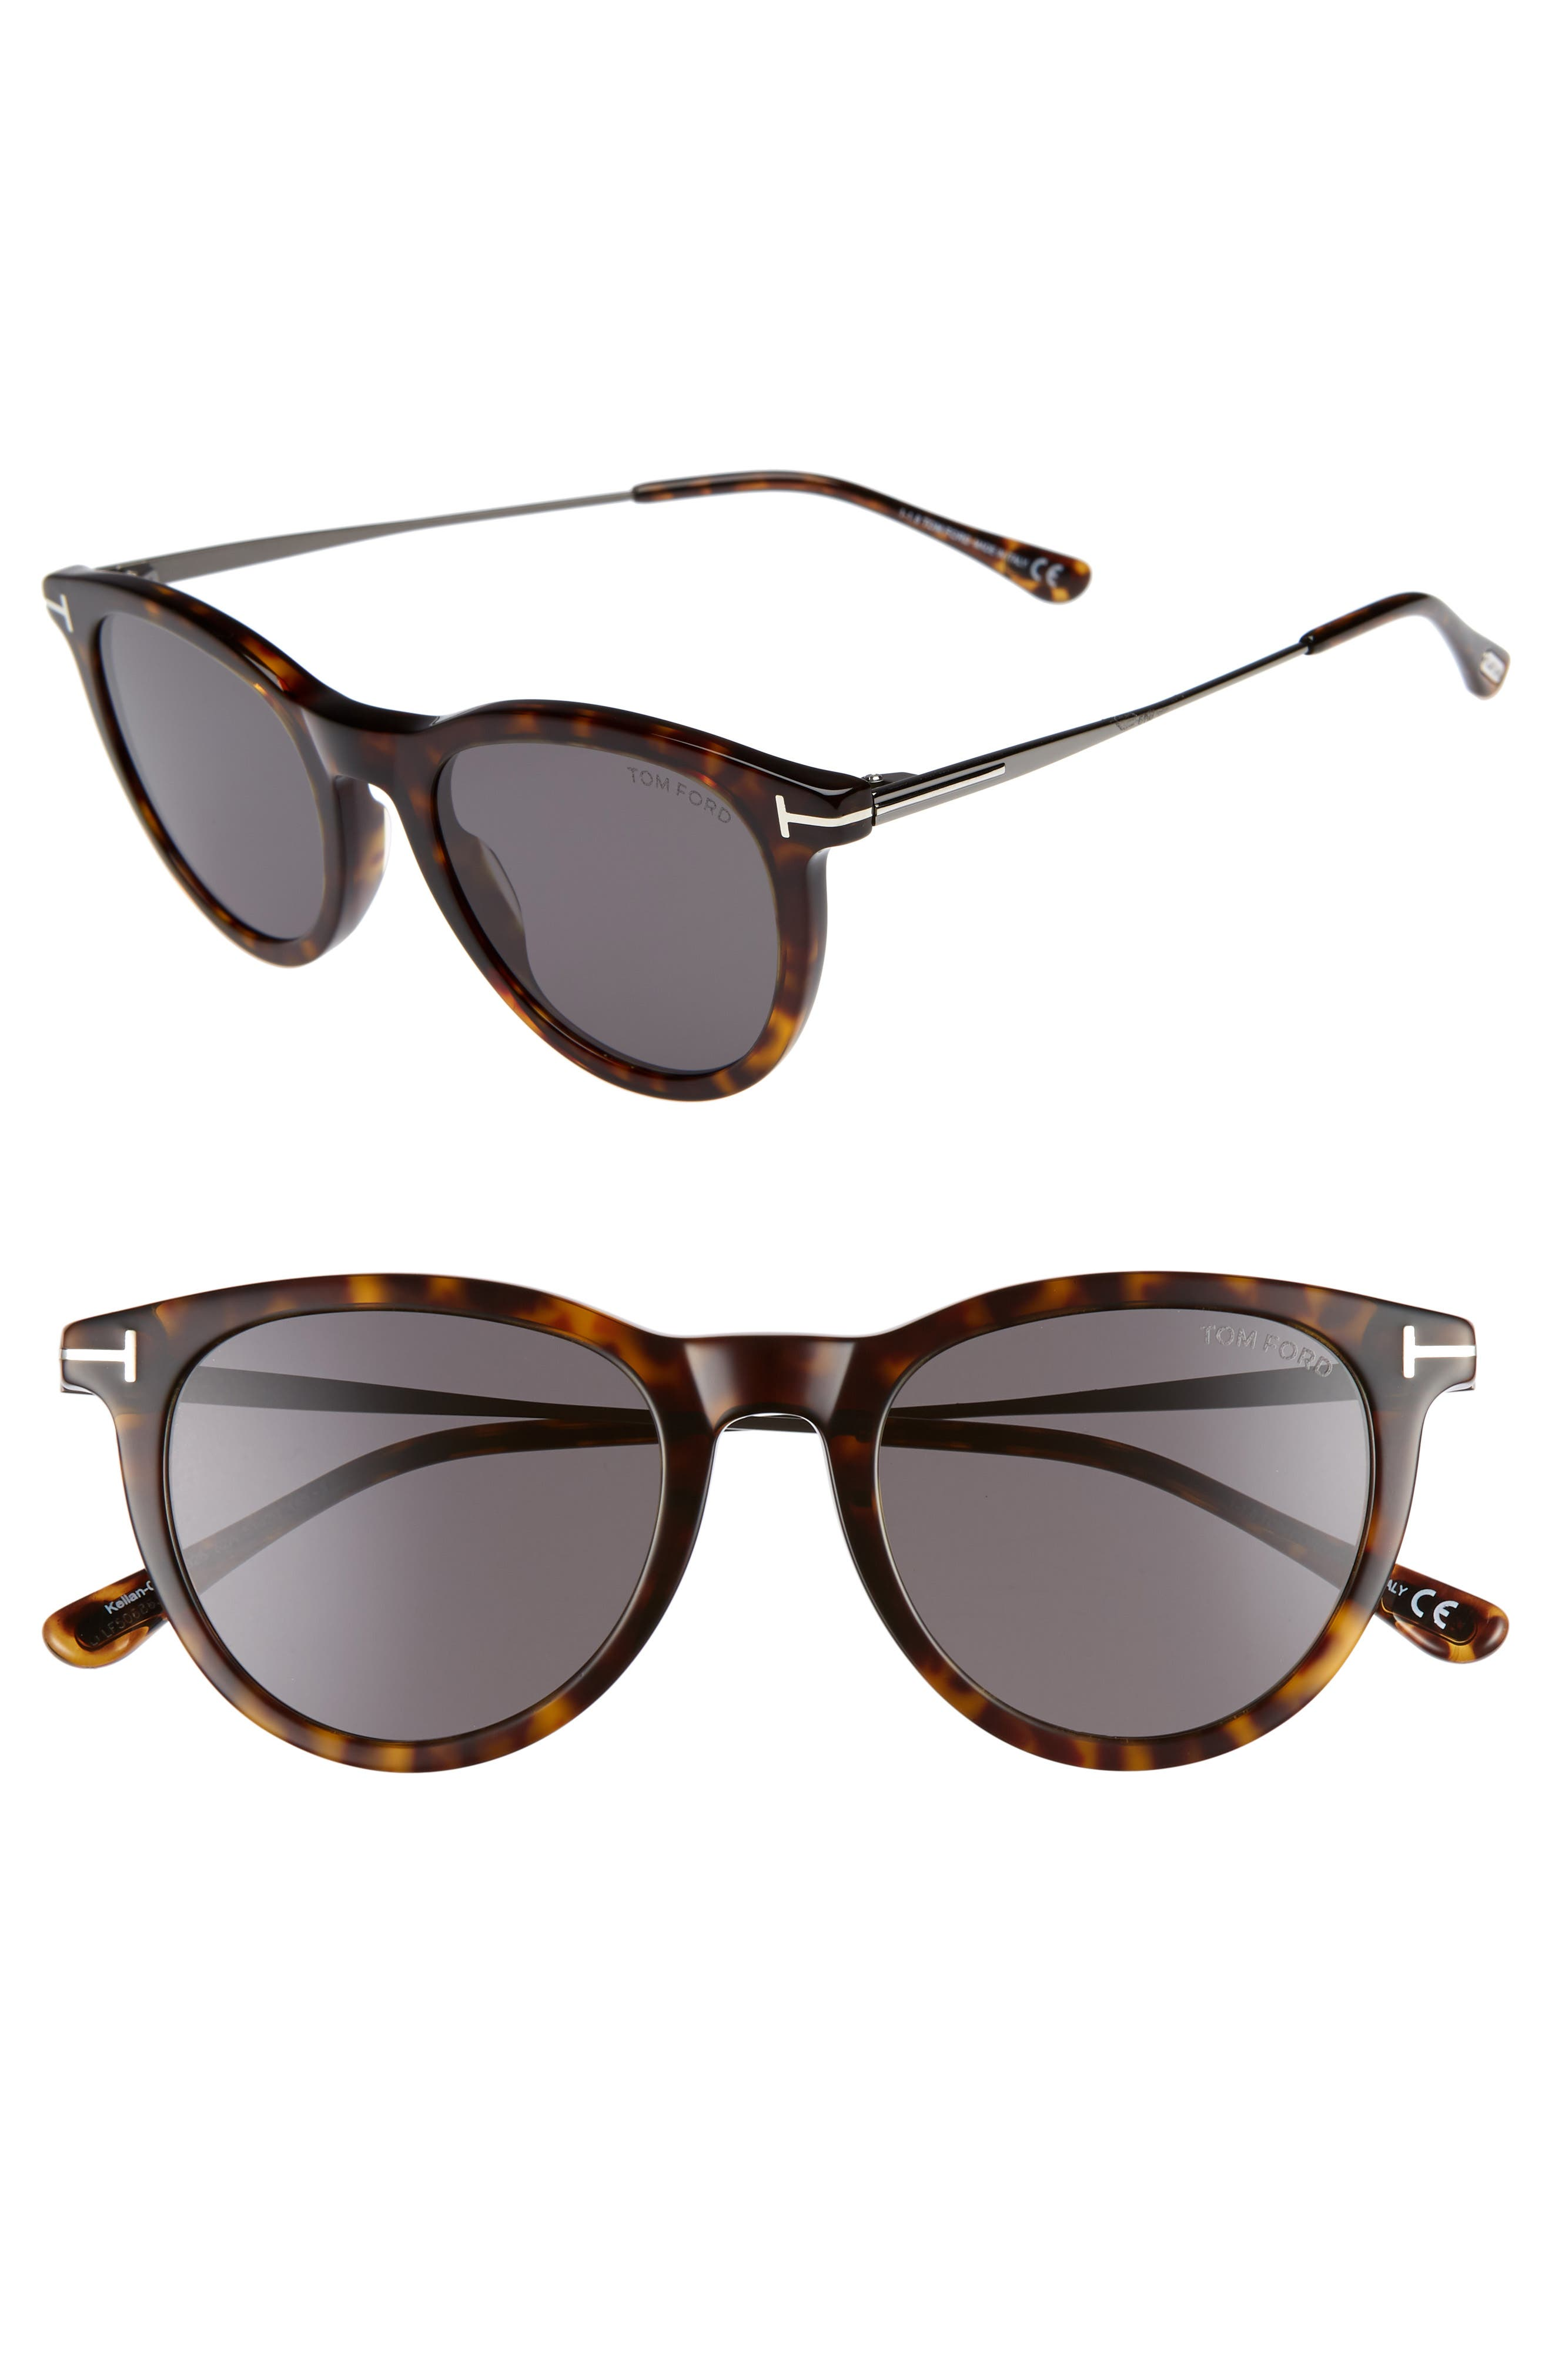 Tom Ford 51Mm Cat Eye Sunglasses - Dark Havana/ Smoke